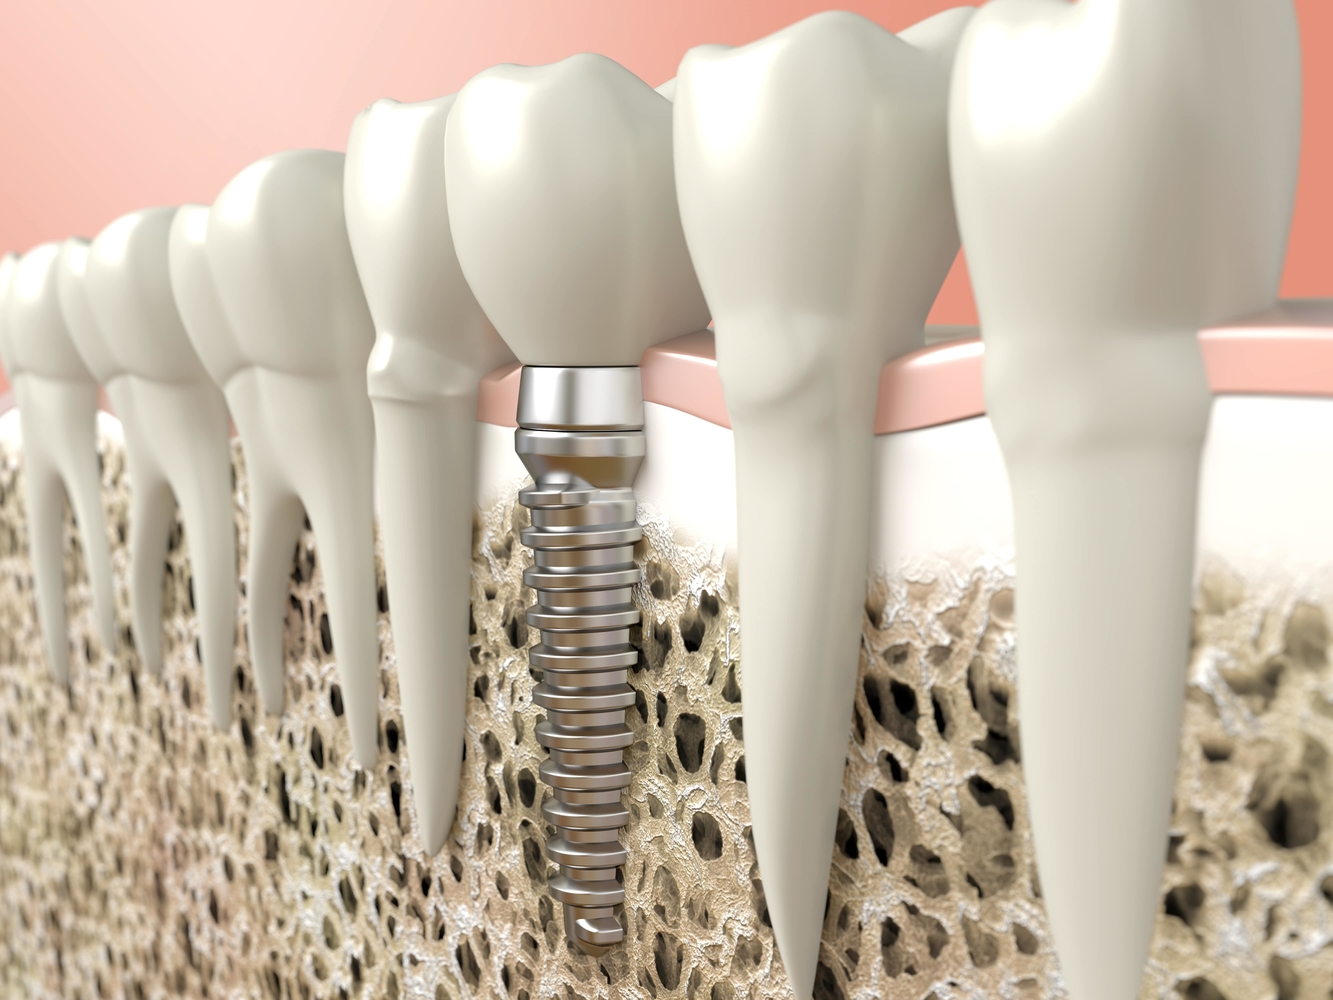 all-on-4-dental-implants-calculating-the-cost-and-value